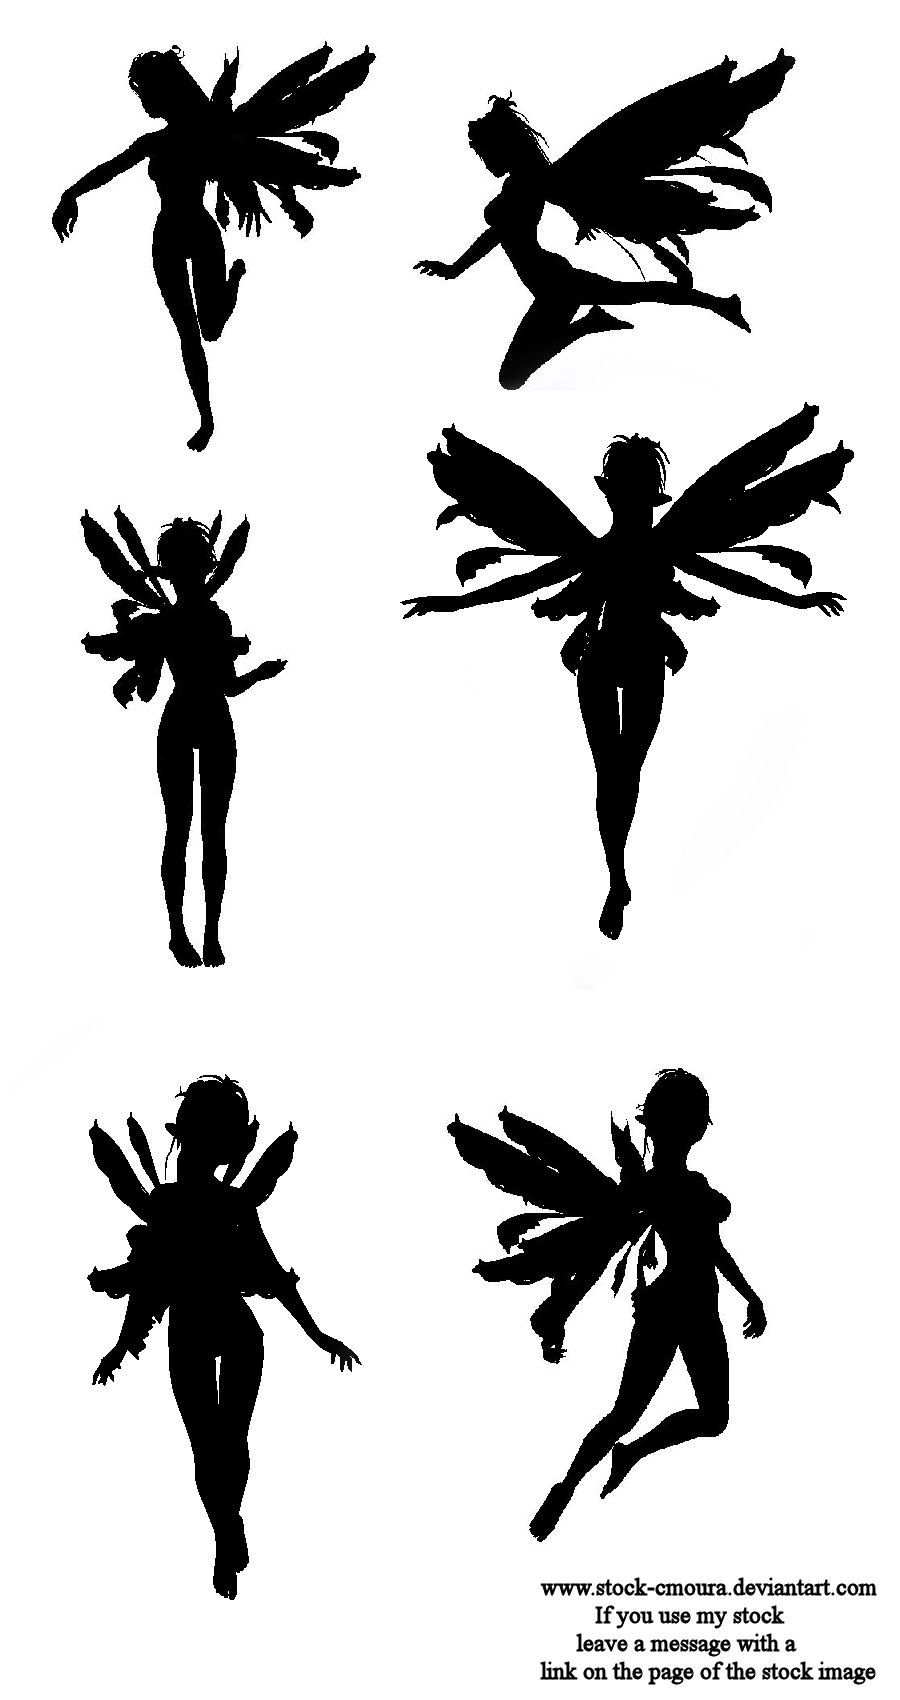 Fairy silhouette by stock cmoura on deviantart for Fairy cut out template